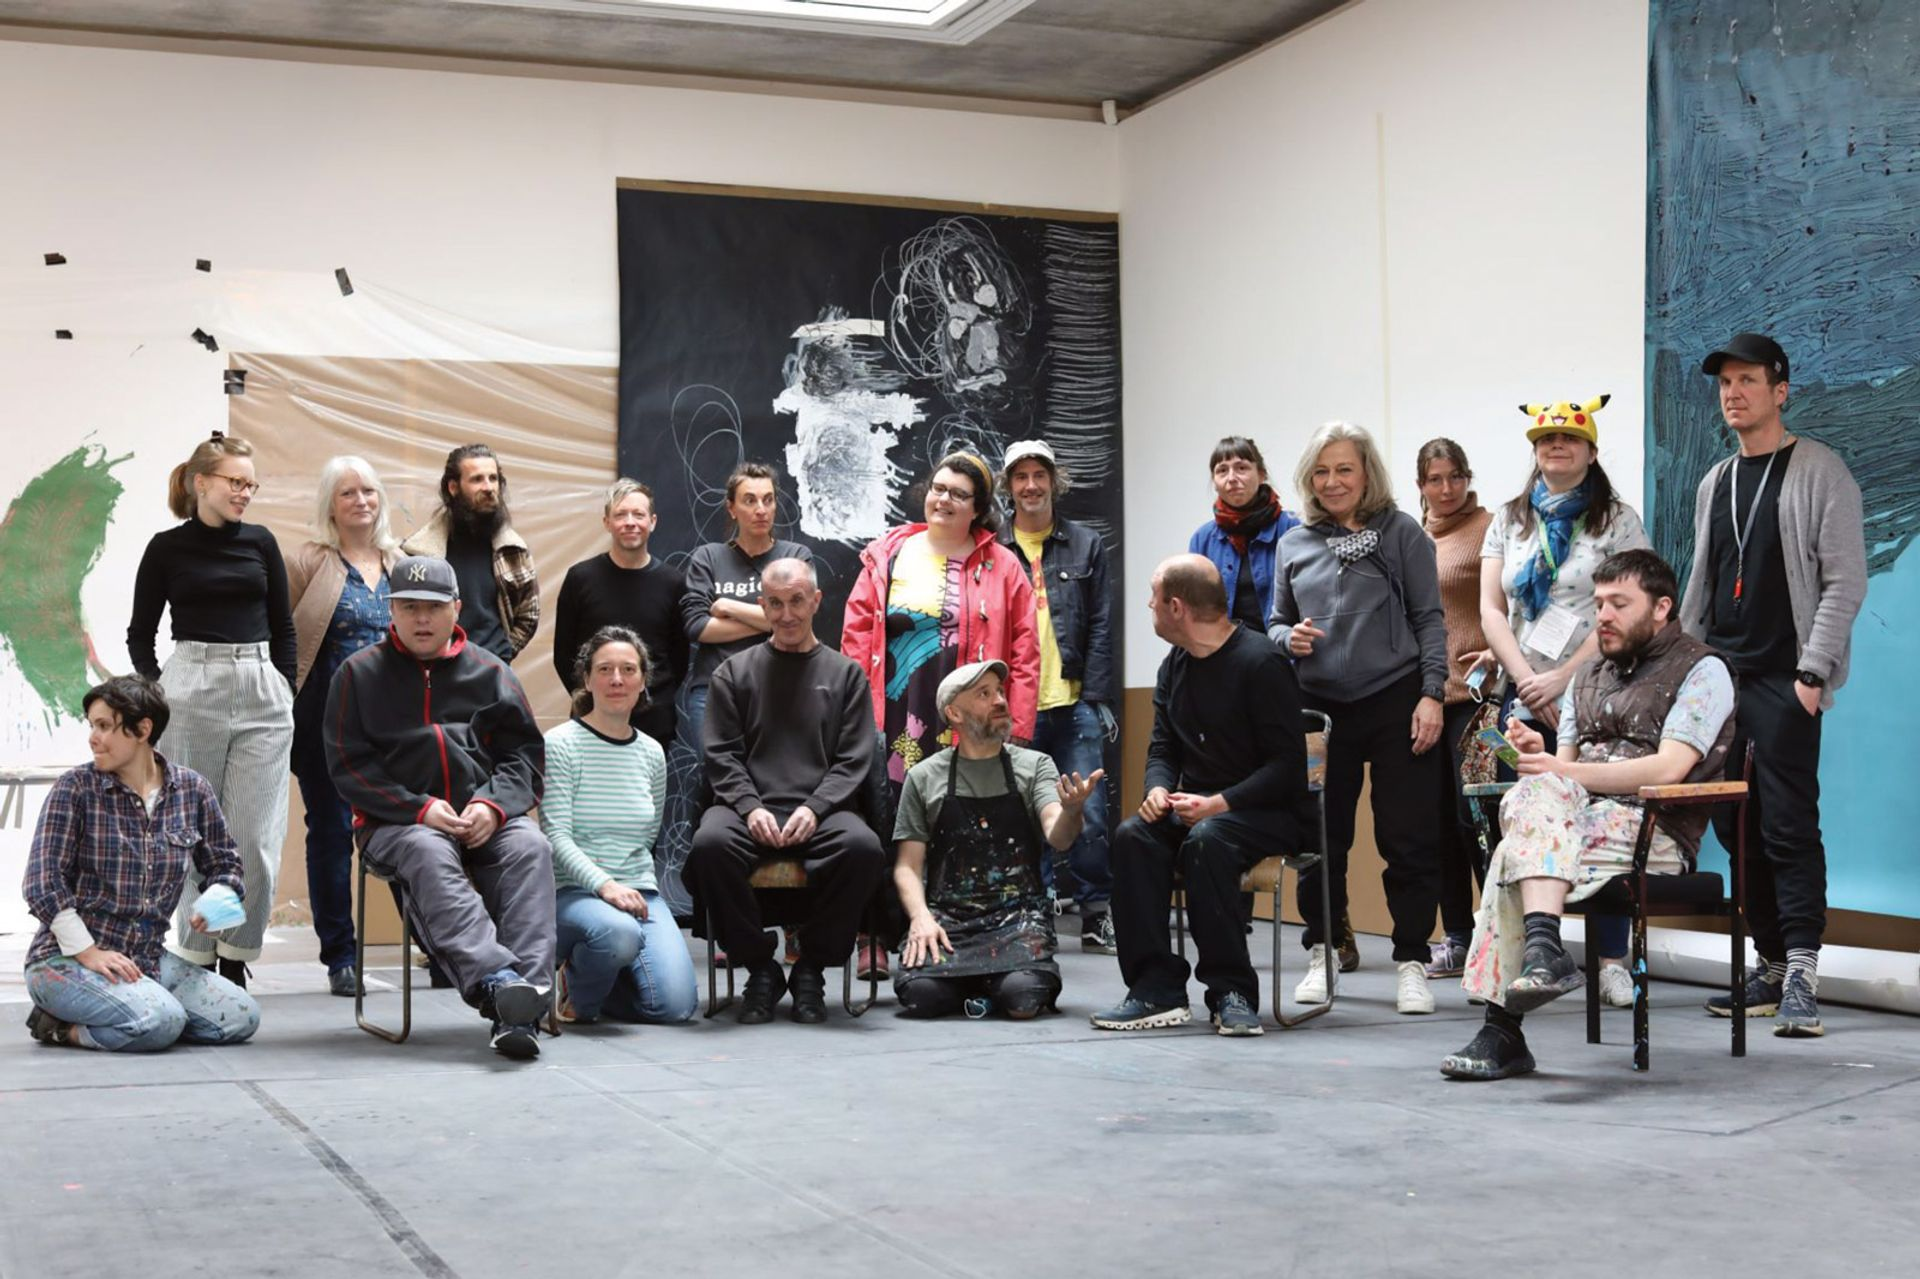 Project Art Works, a collective of neurodiverse artists and activists, has been nominated for the Turner Prize © Project Art Works